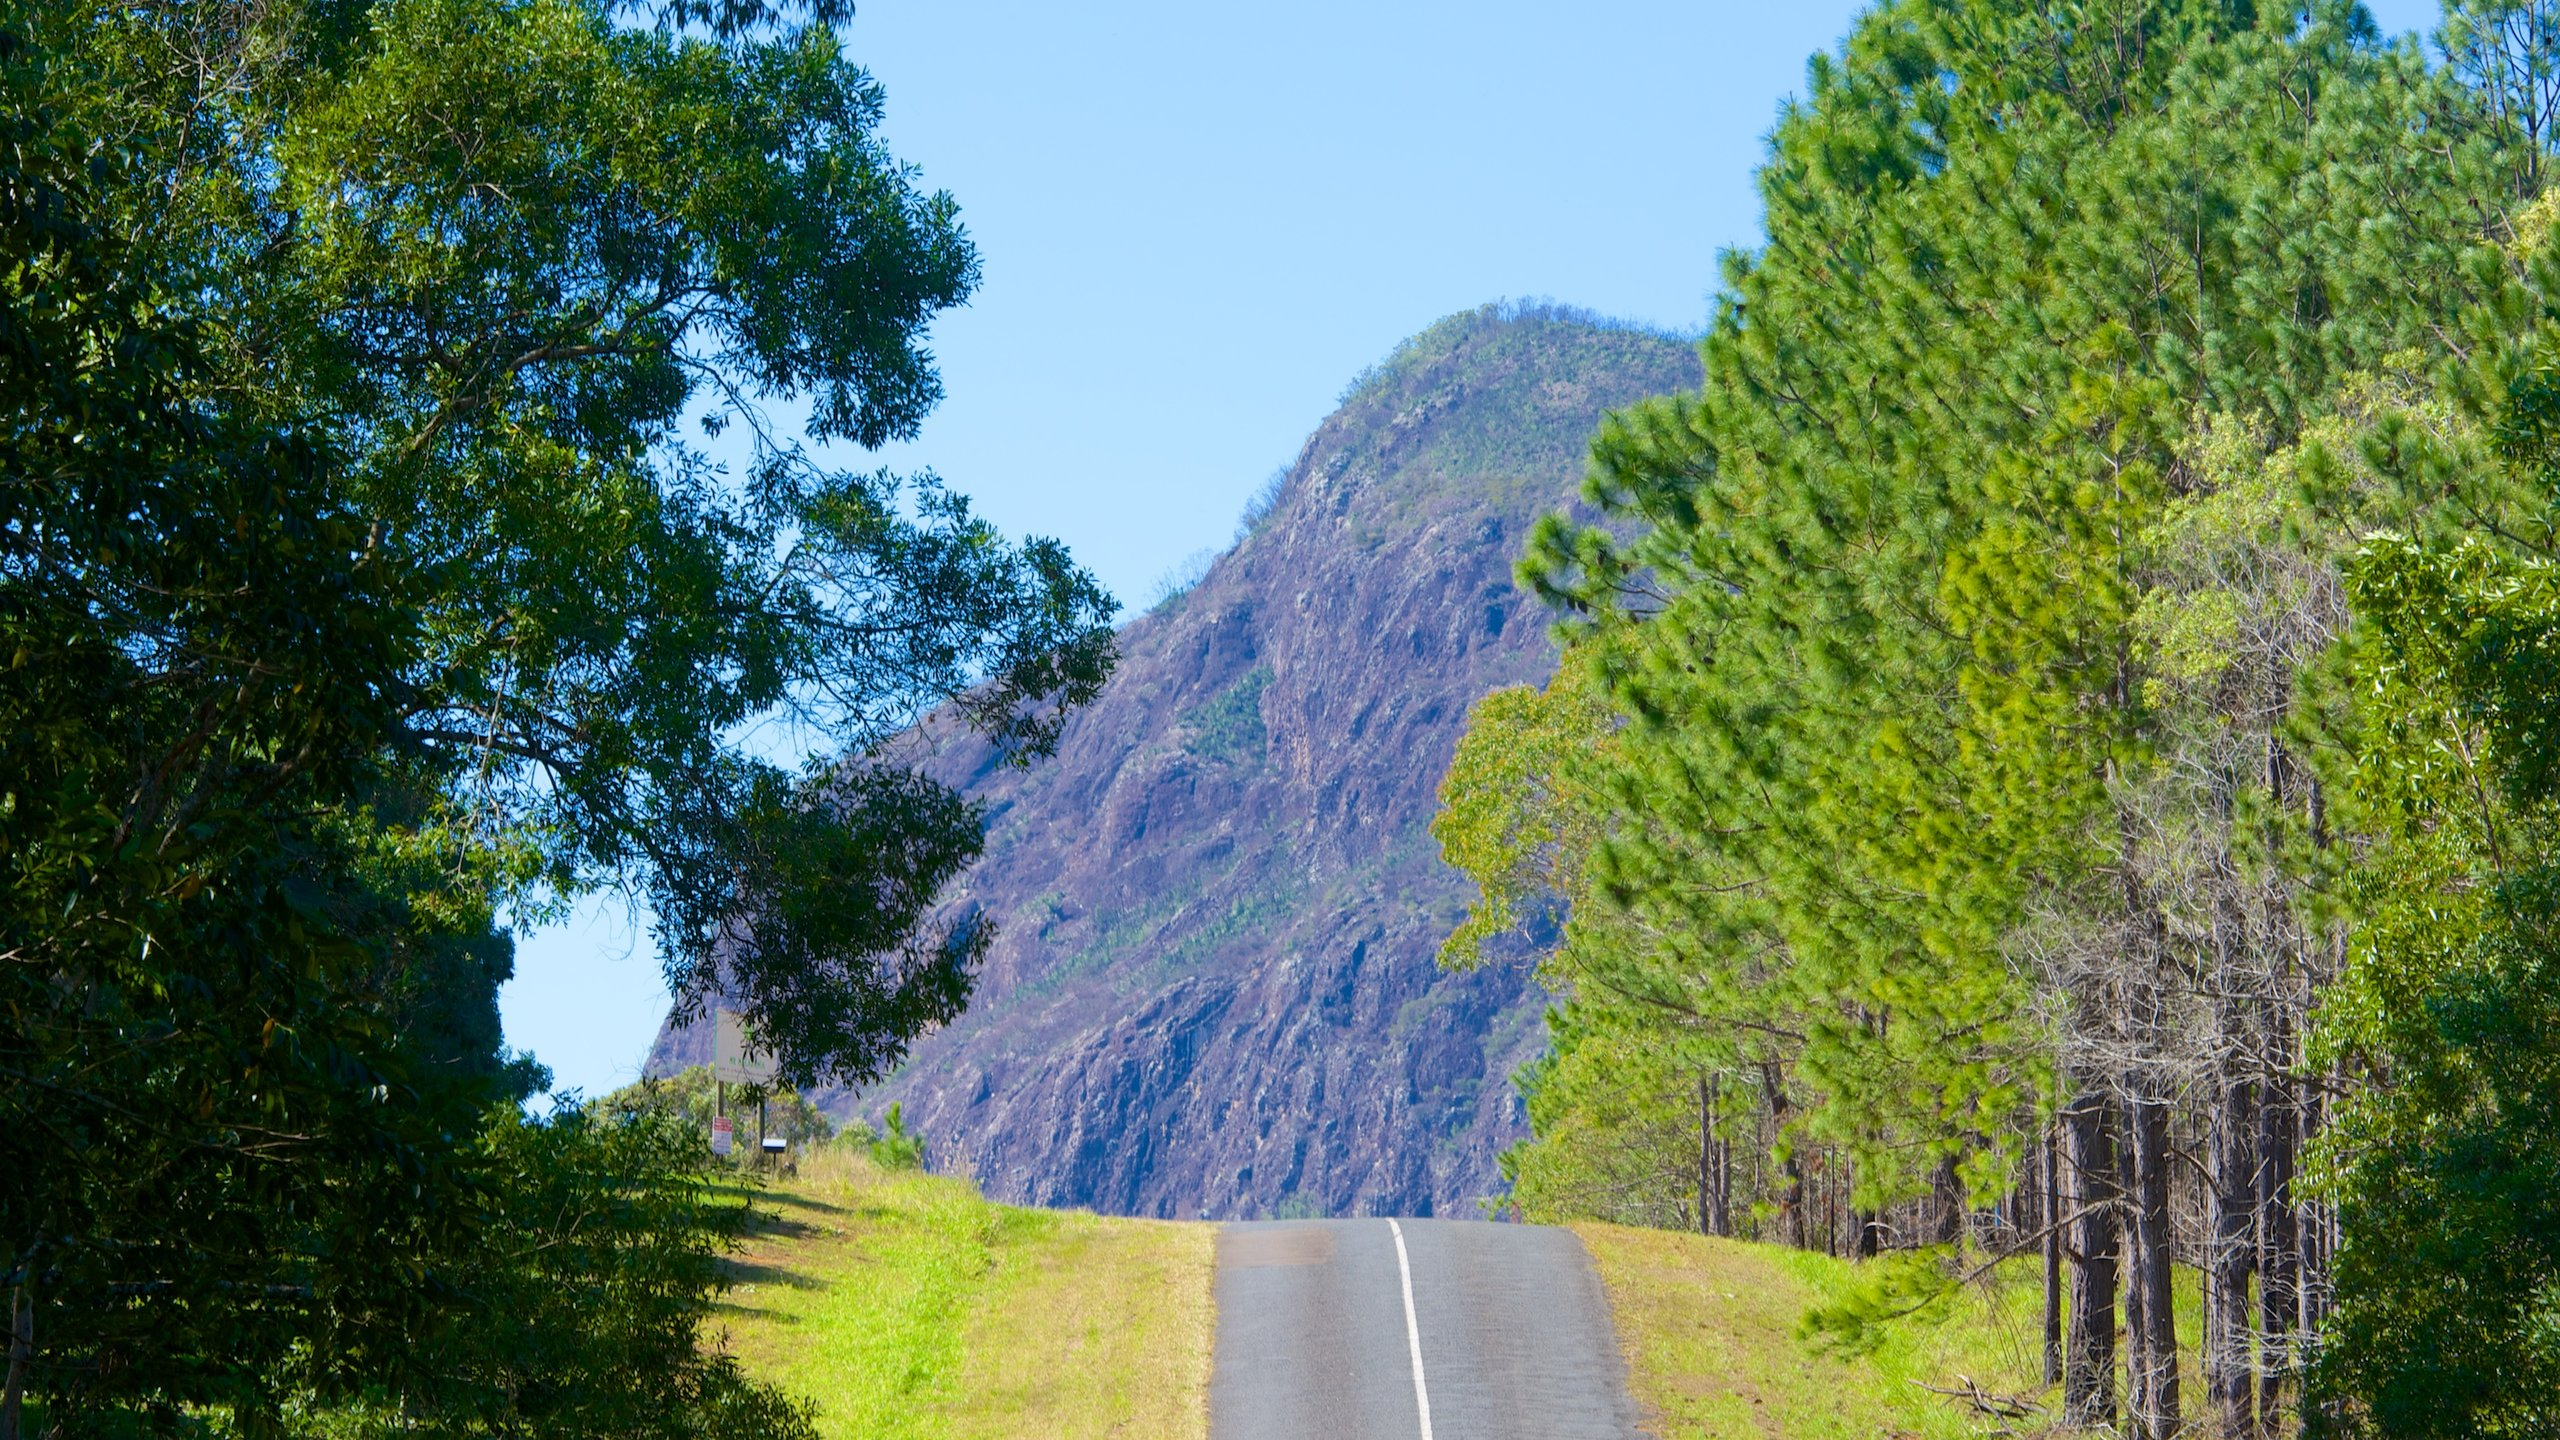 Glass House Mountains Vacation Rentals from $73: Search ...